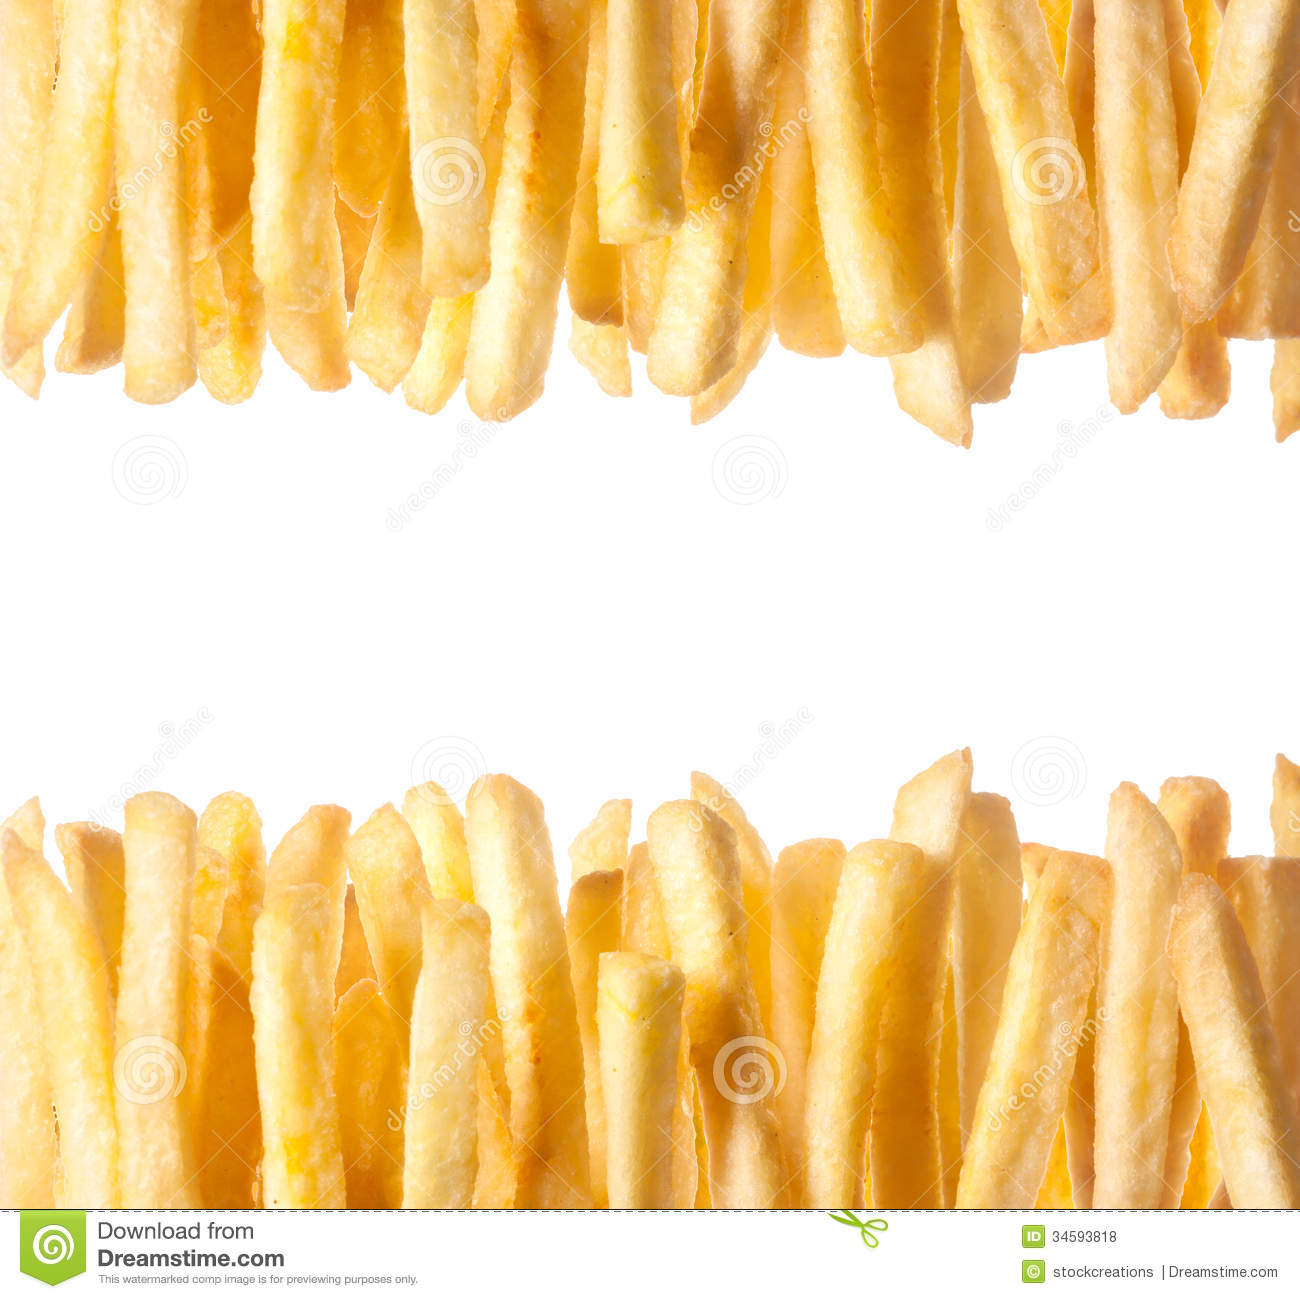 French fries Illustrations and Clip Art 13068 French